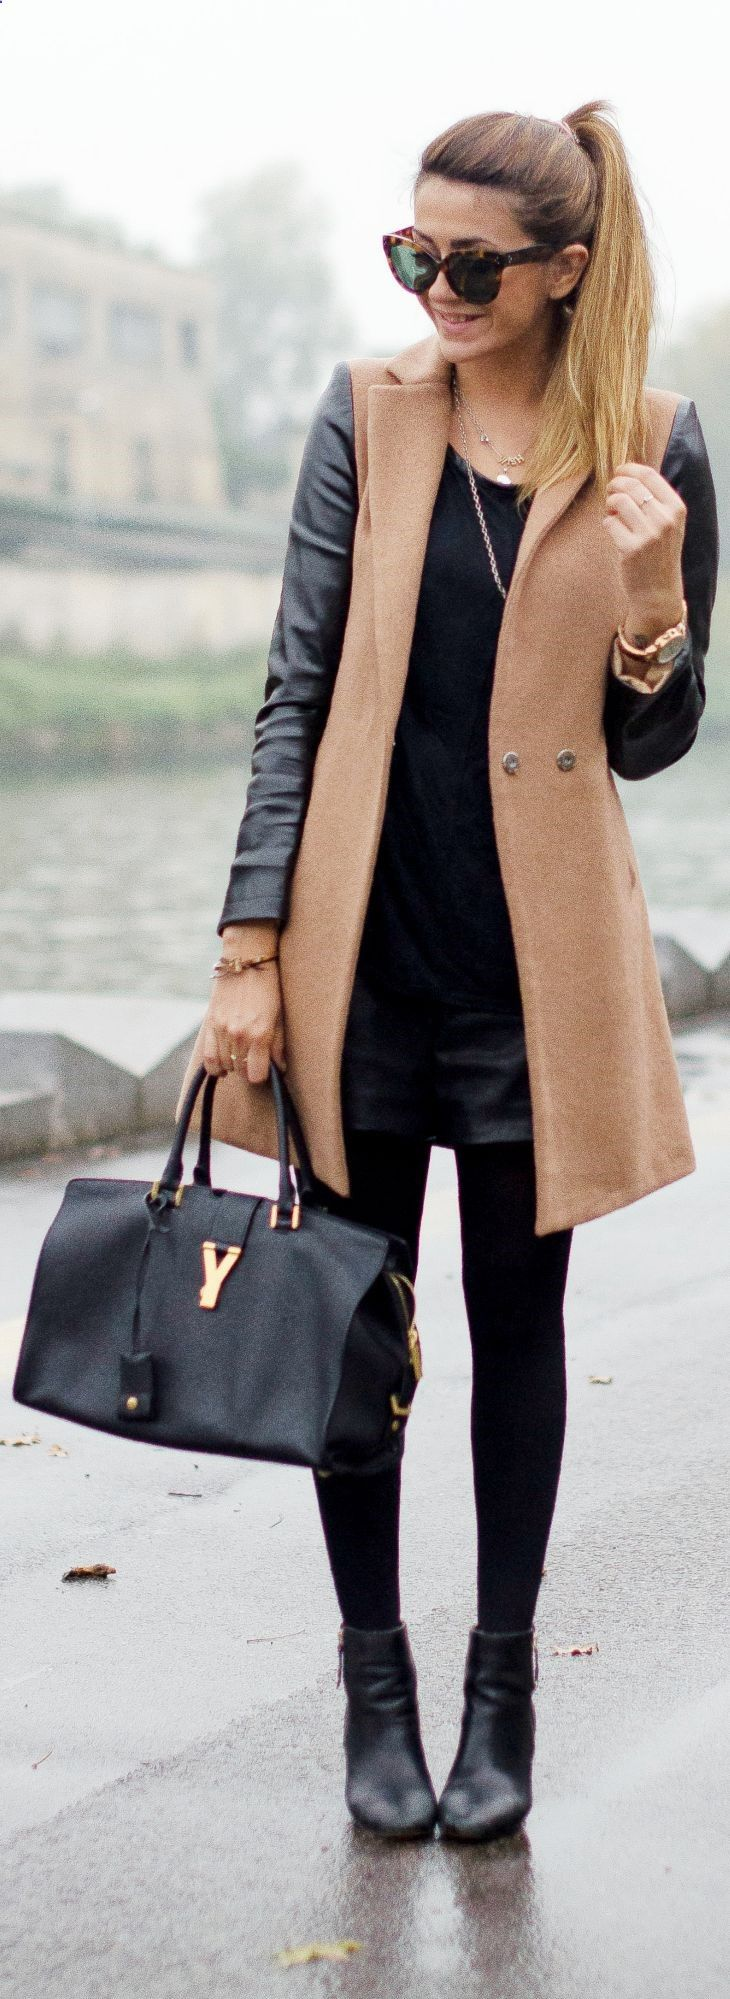 Two toned jacket with camel body and black leather sleeves, black leather booties and shorts with black tights and top.